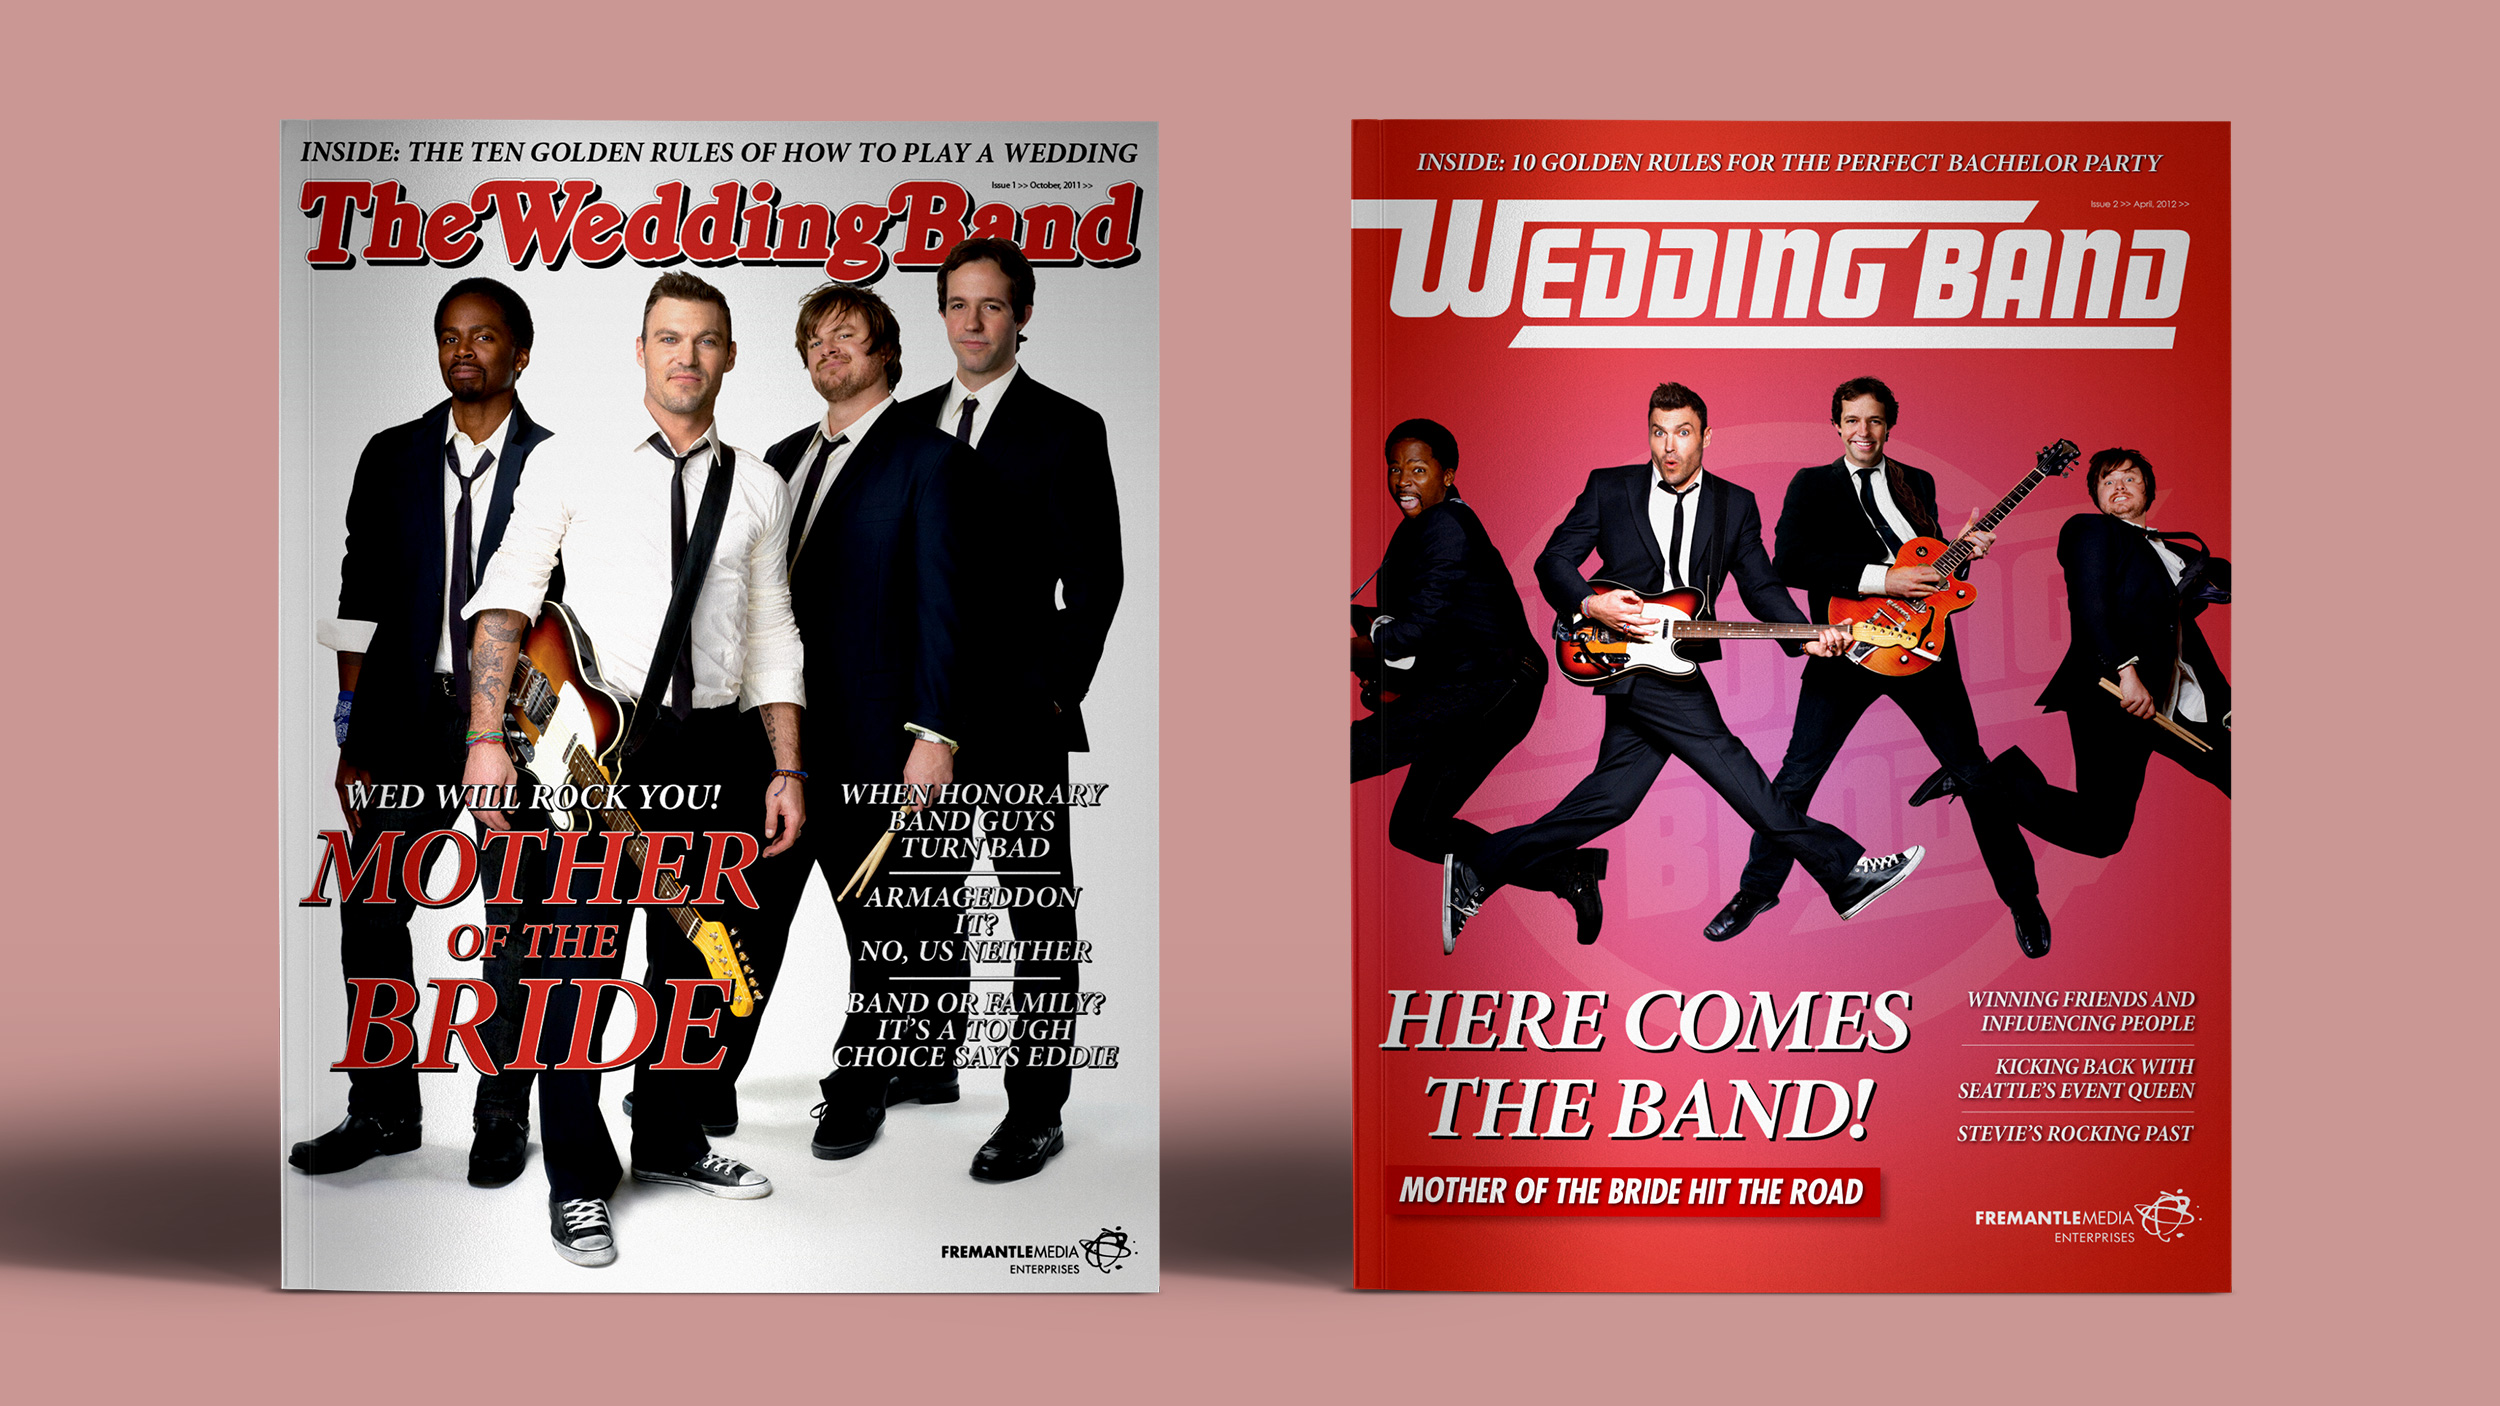 Tbs Wedding Band The Campaign